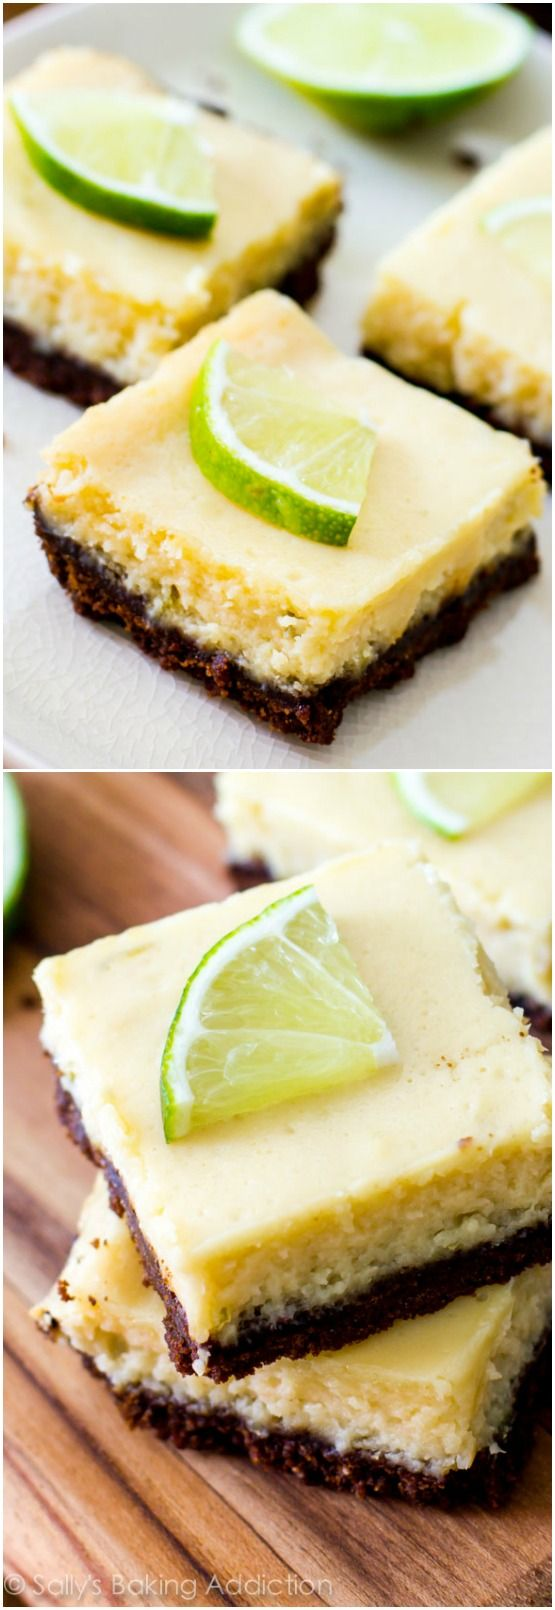 6 ingredient Key Lime Pie Squares – you will fall in love with these zesty, easy-to-make bars!